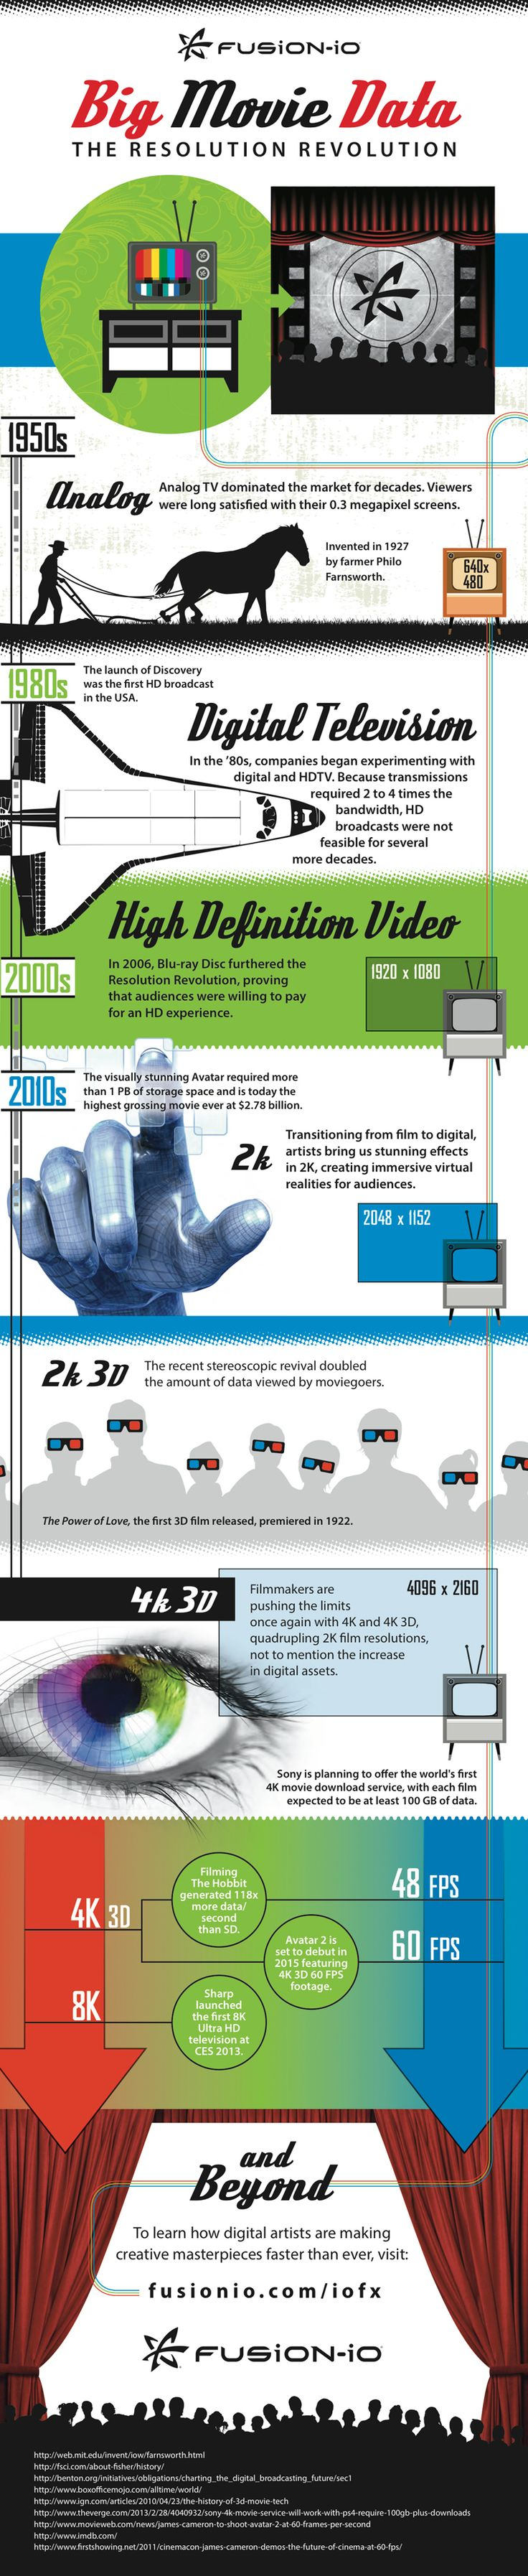 Hollywood's appetite for bigger screen resolutions pumps up the storage volume #infographic